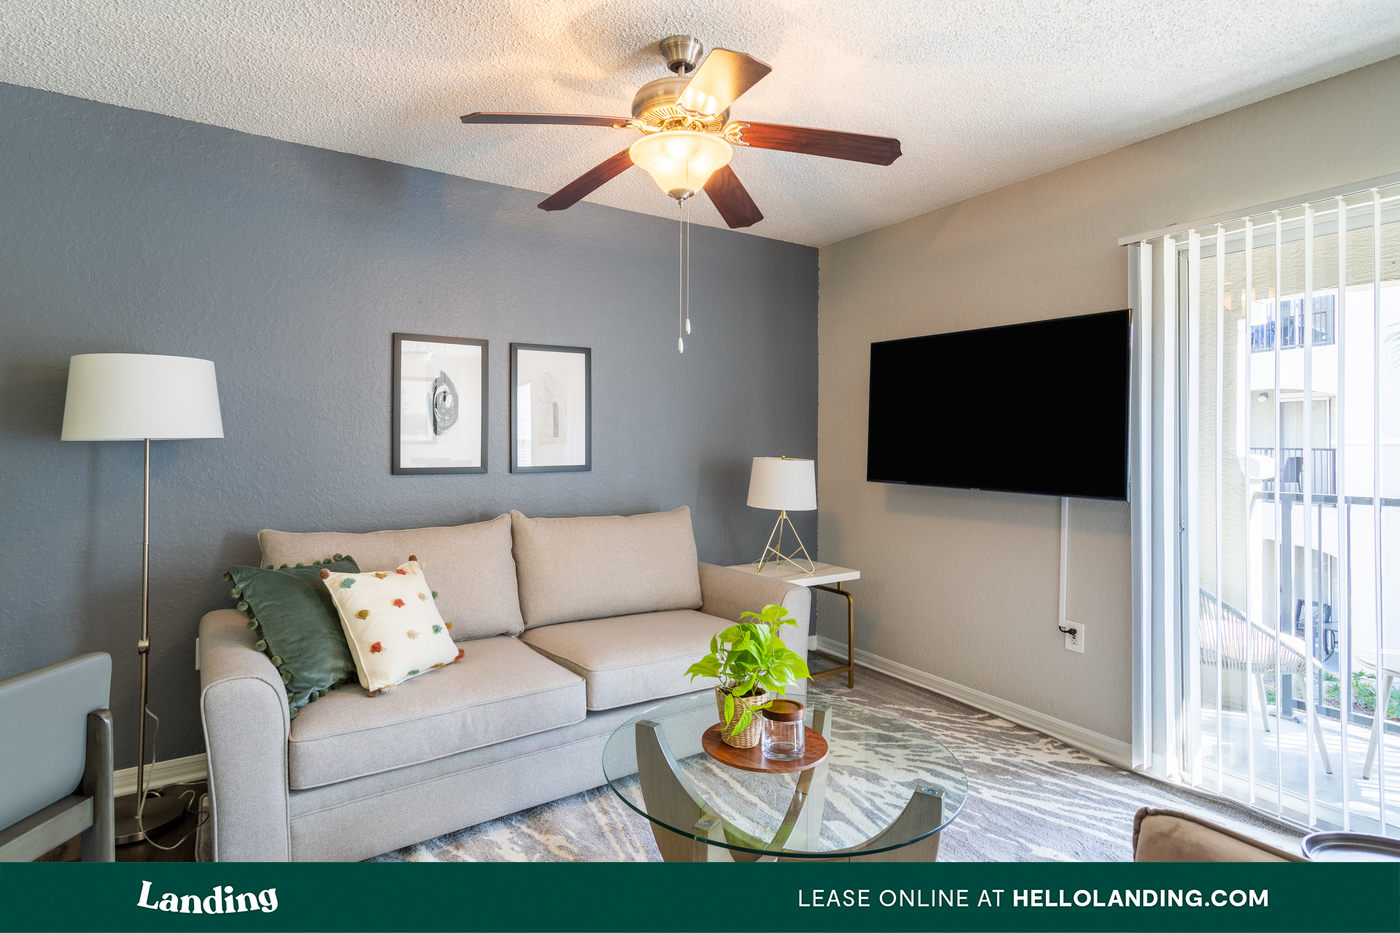 Landing Furnished Apartment The Avenue photo